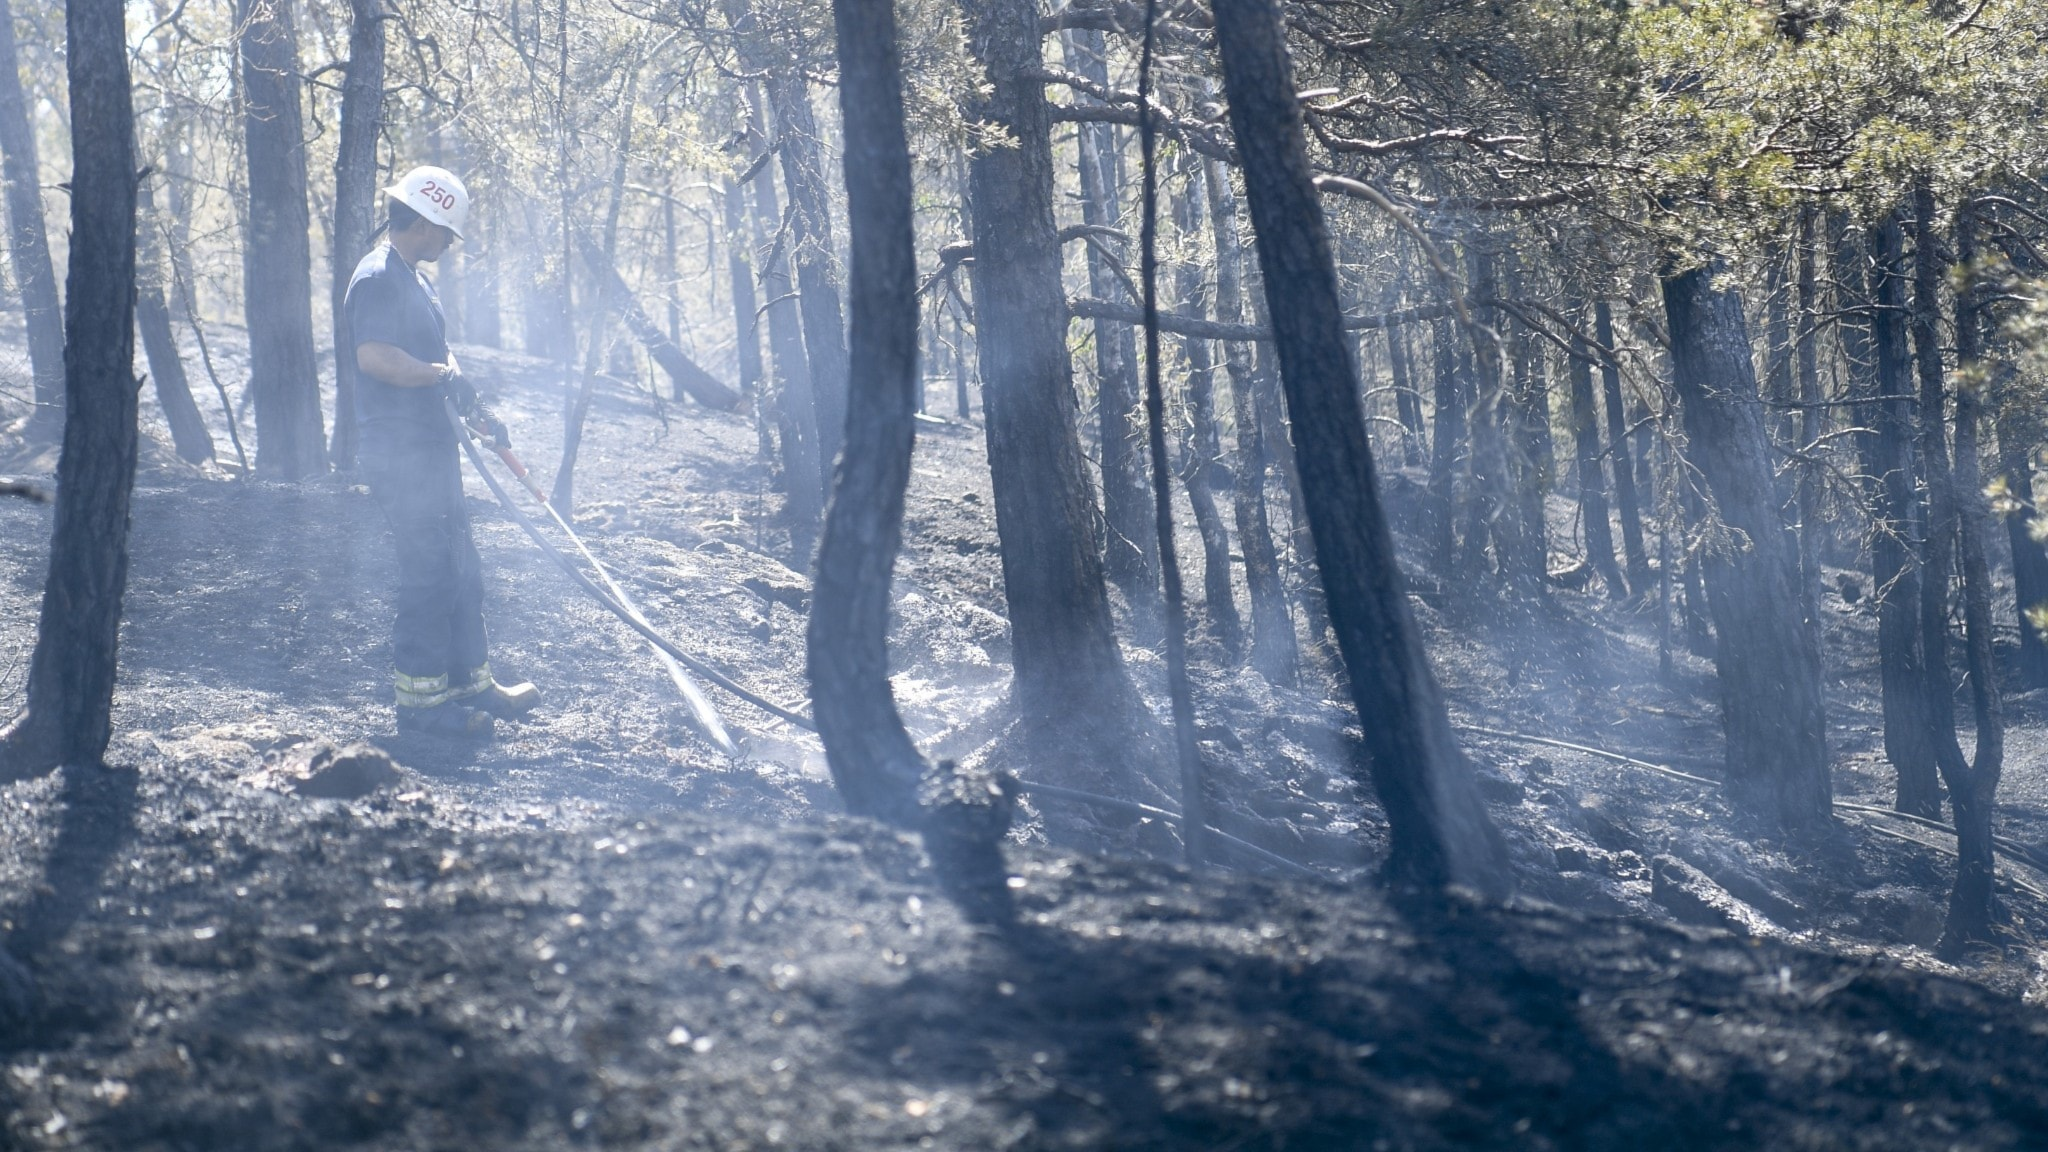 A smokey, burnt woods with a firefighter standing in between some trees.